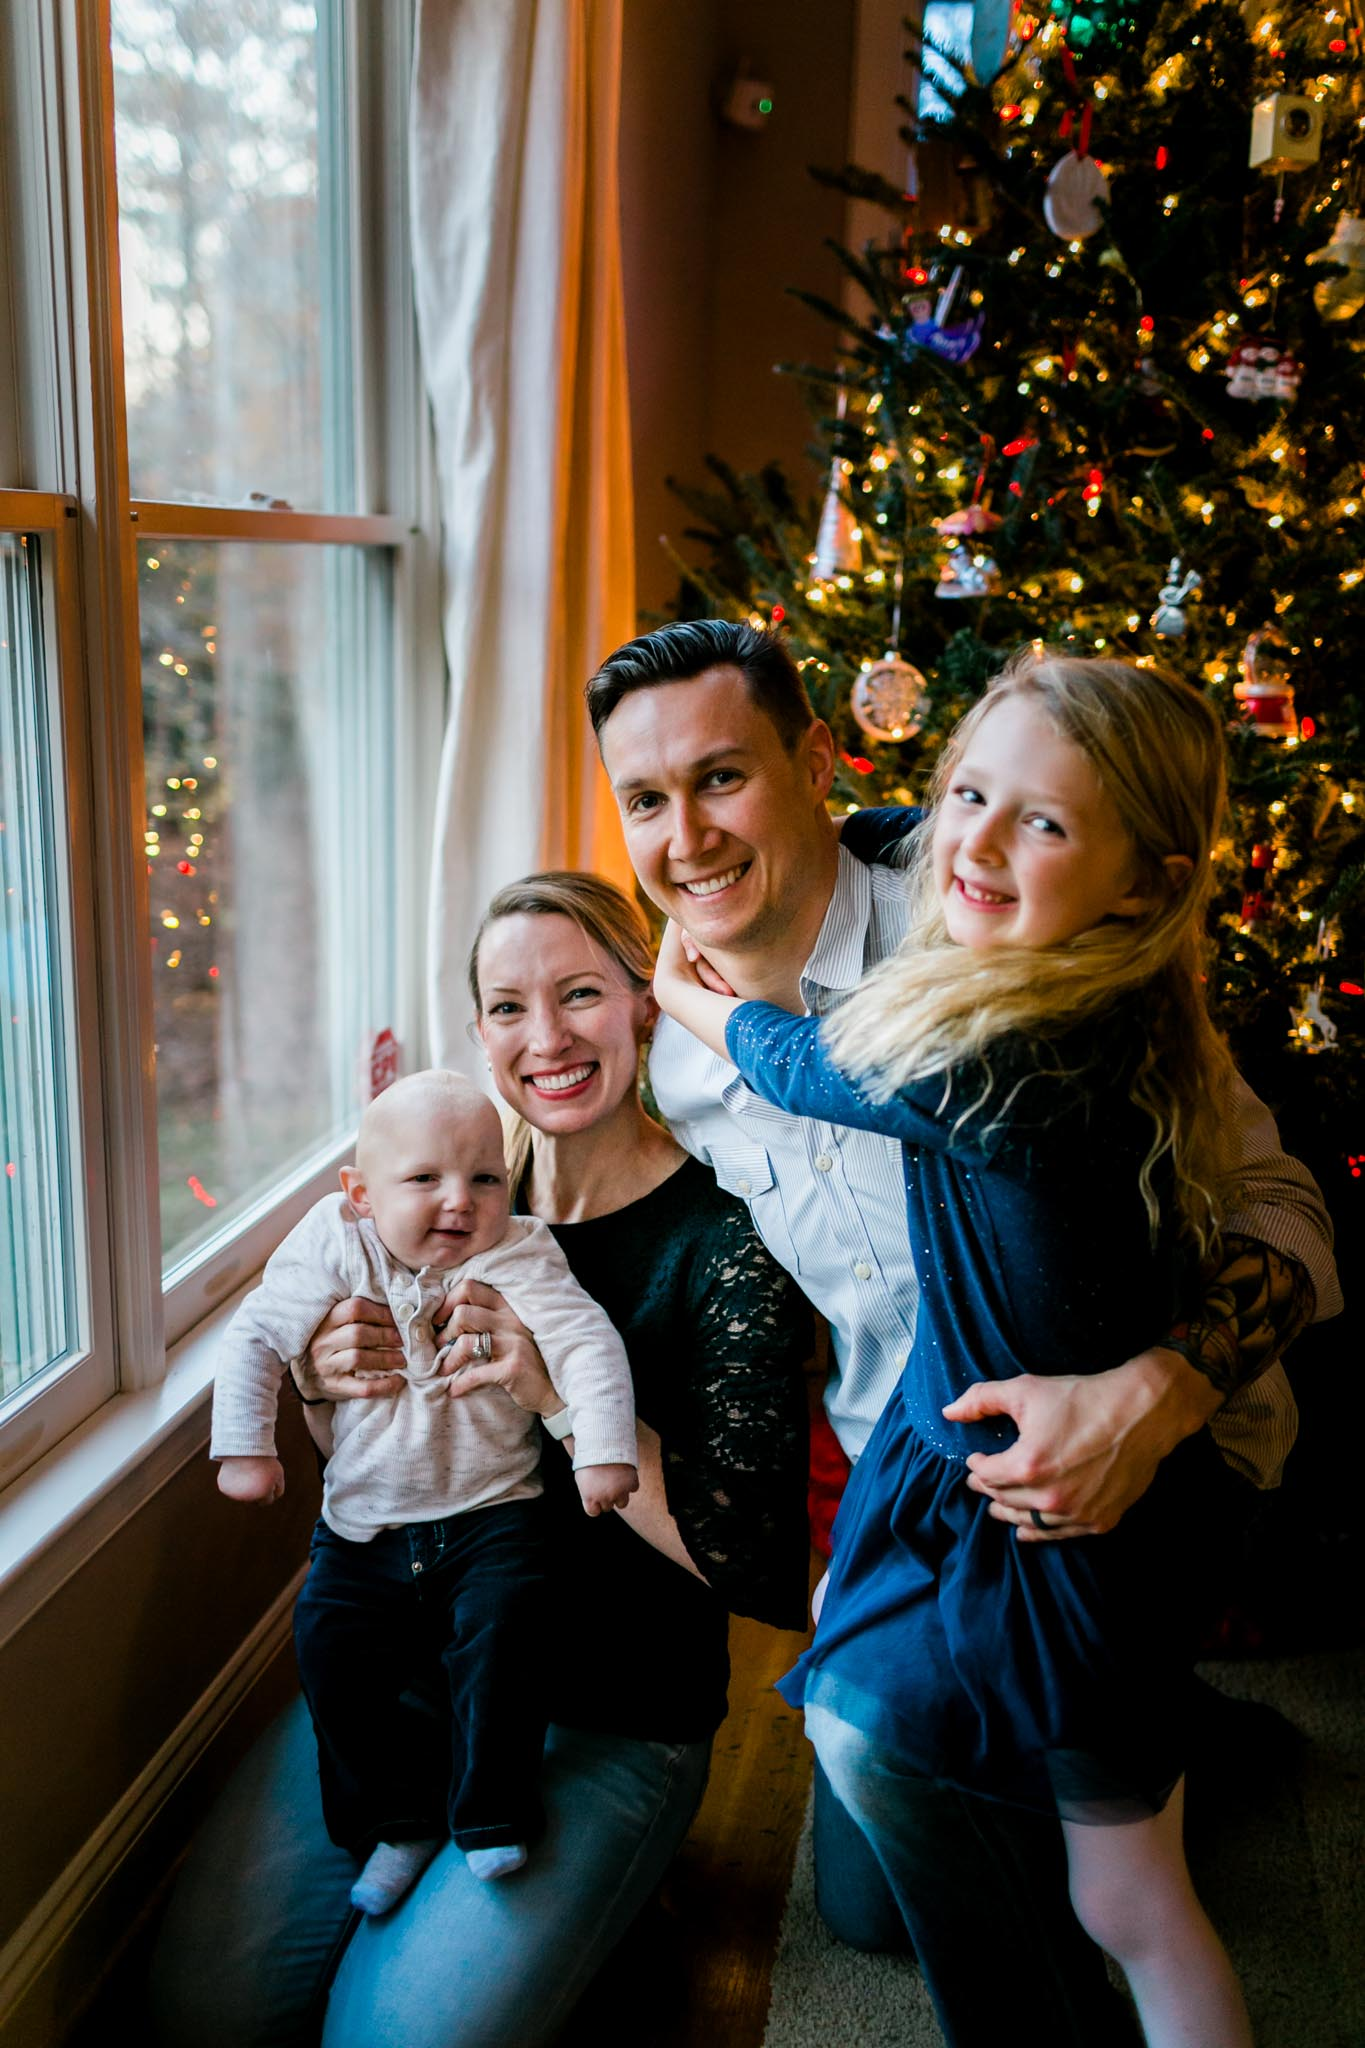 Family photo by Christmas Tree | By G. Lin Photography | Durham Photographer